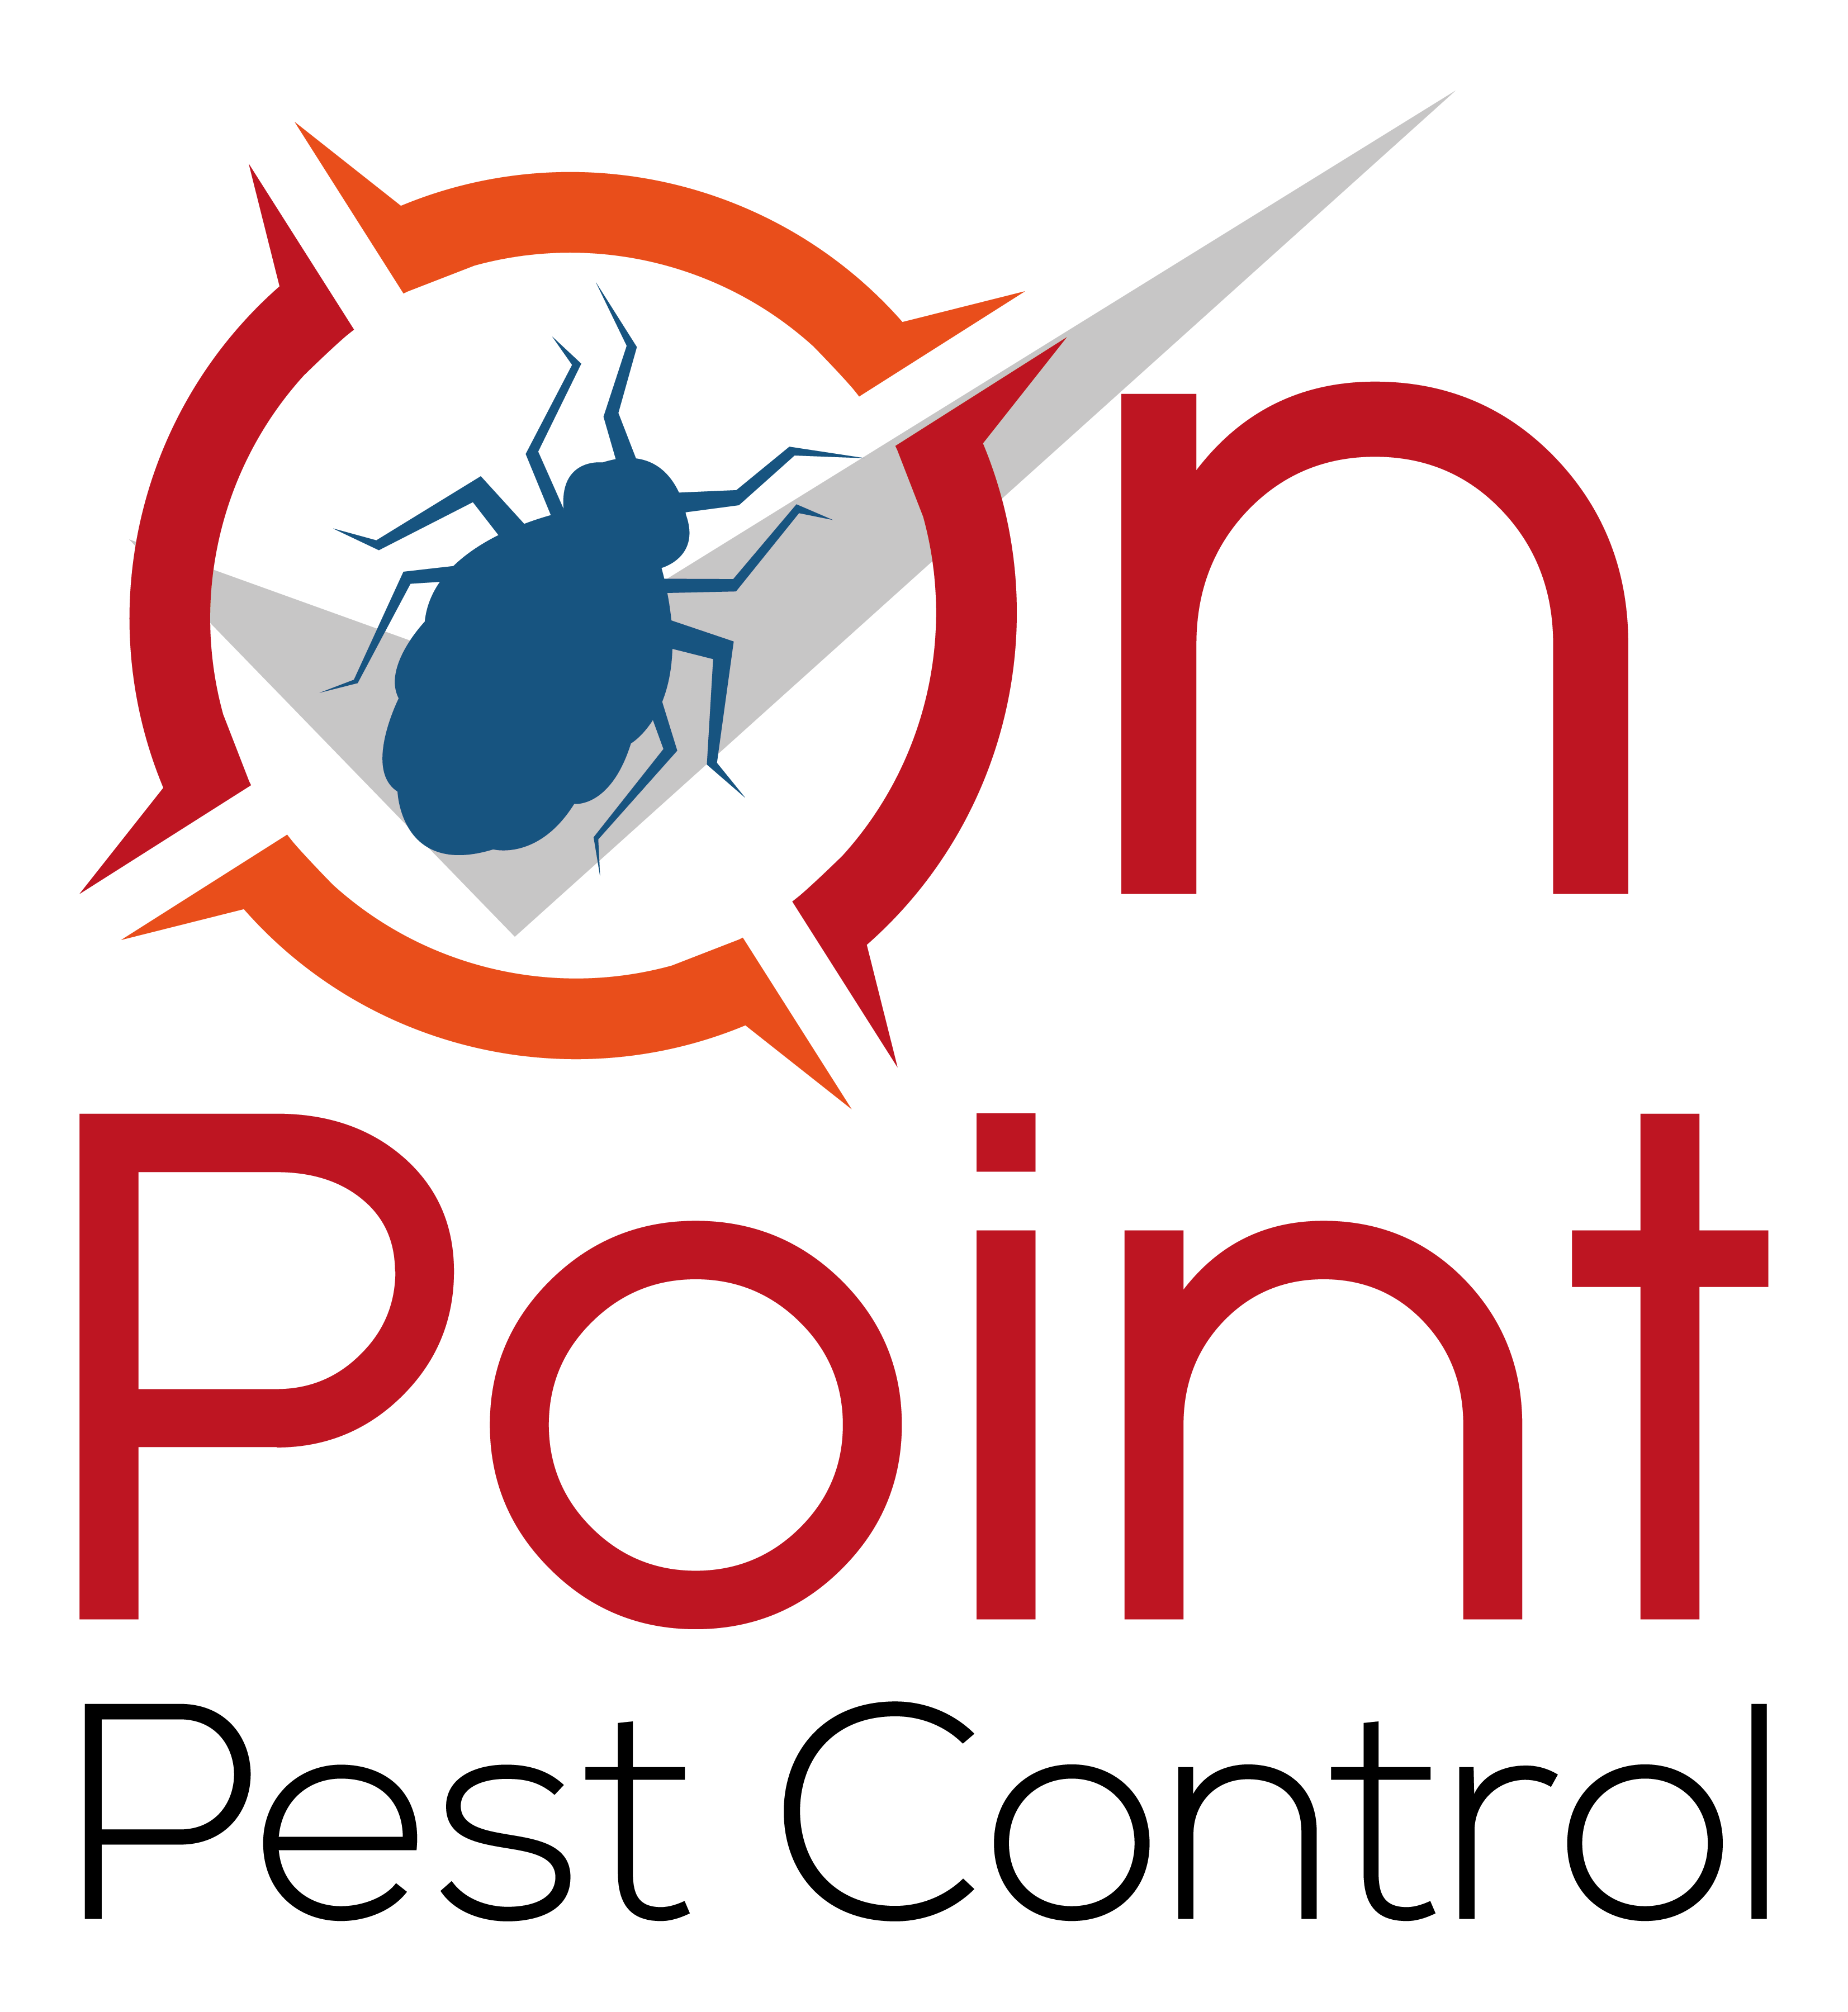 On Point Pest Control LLC